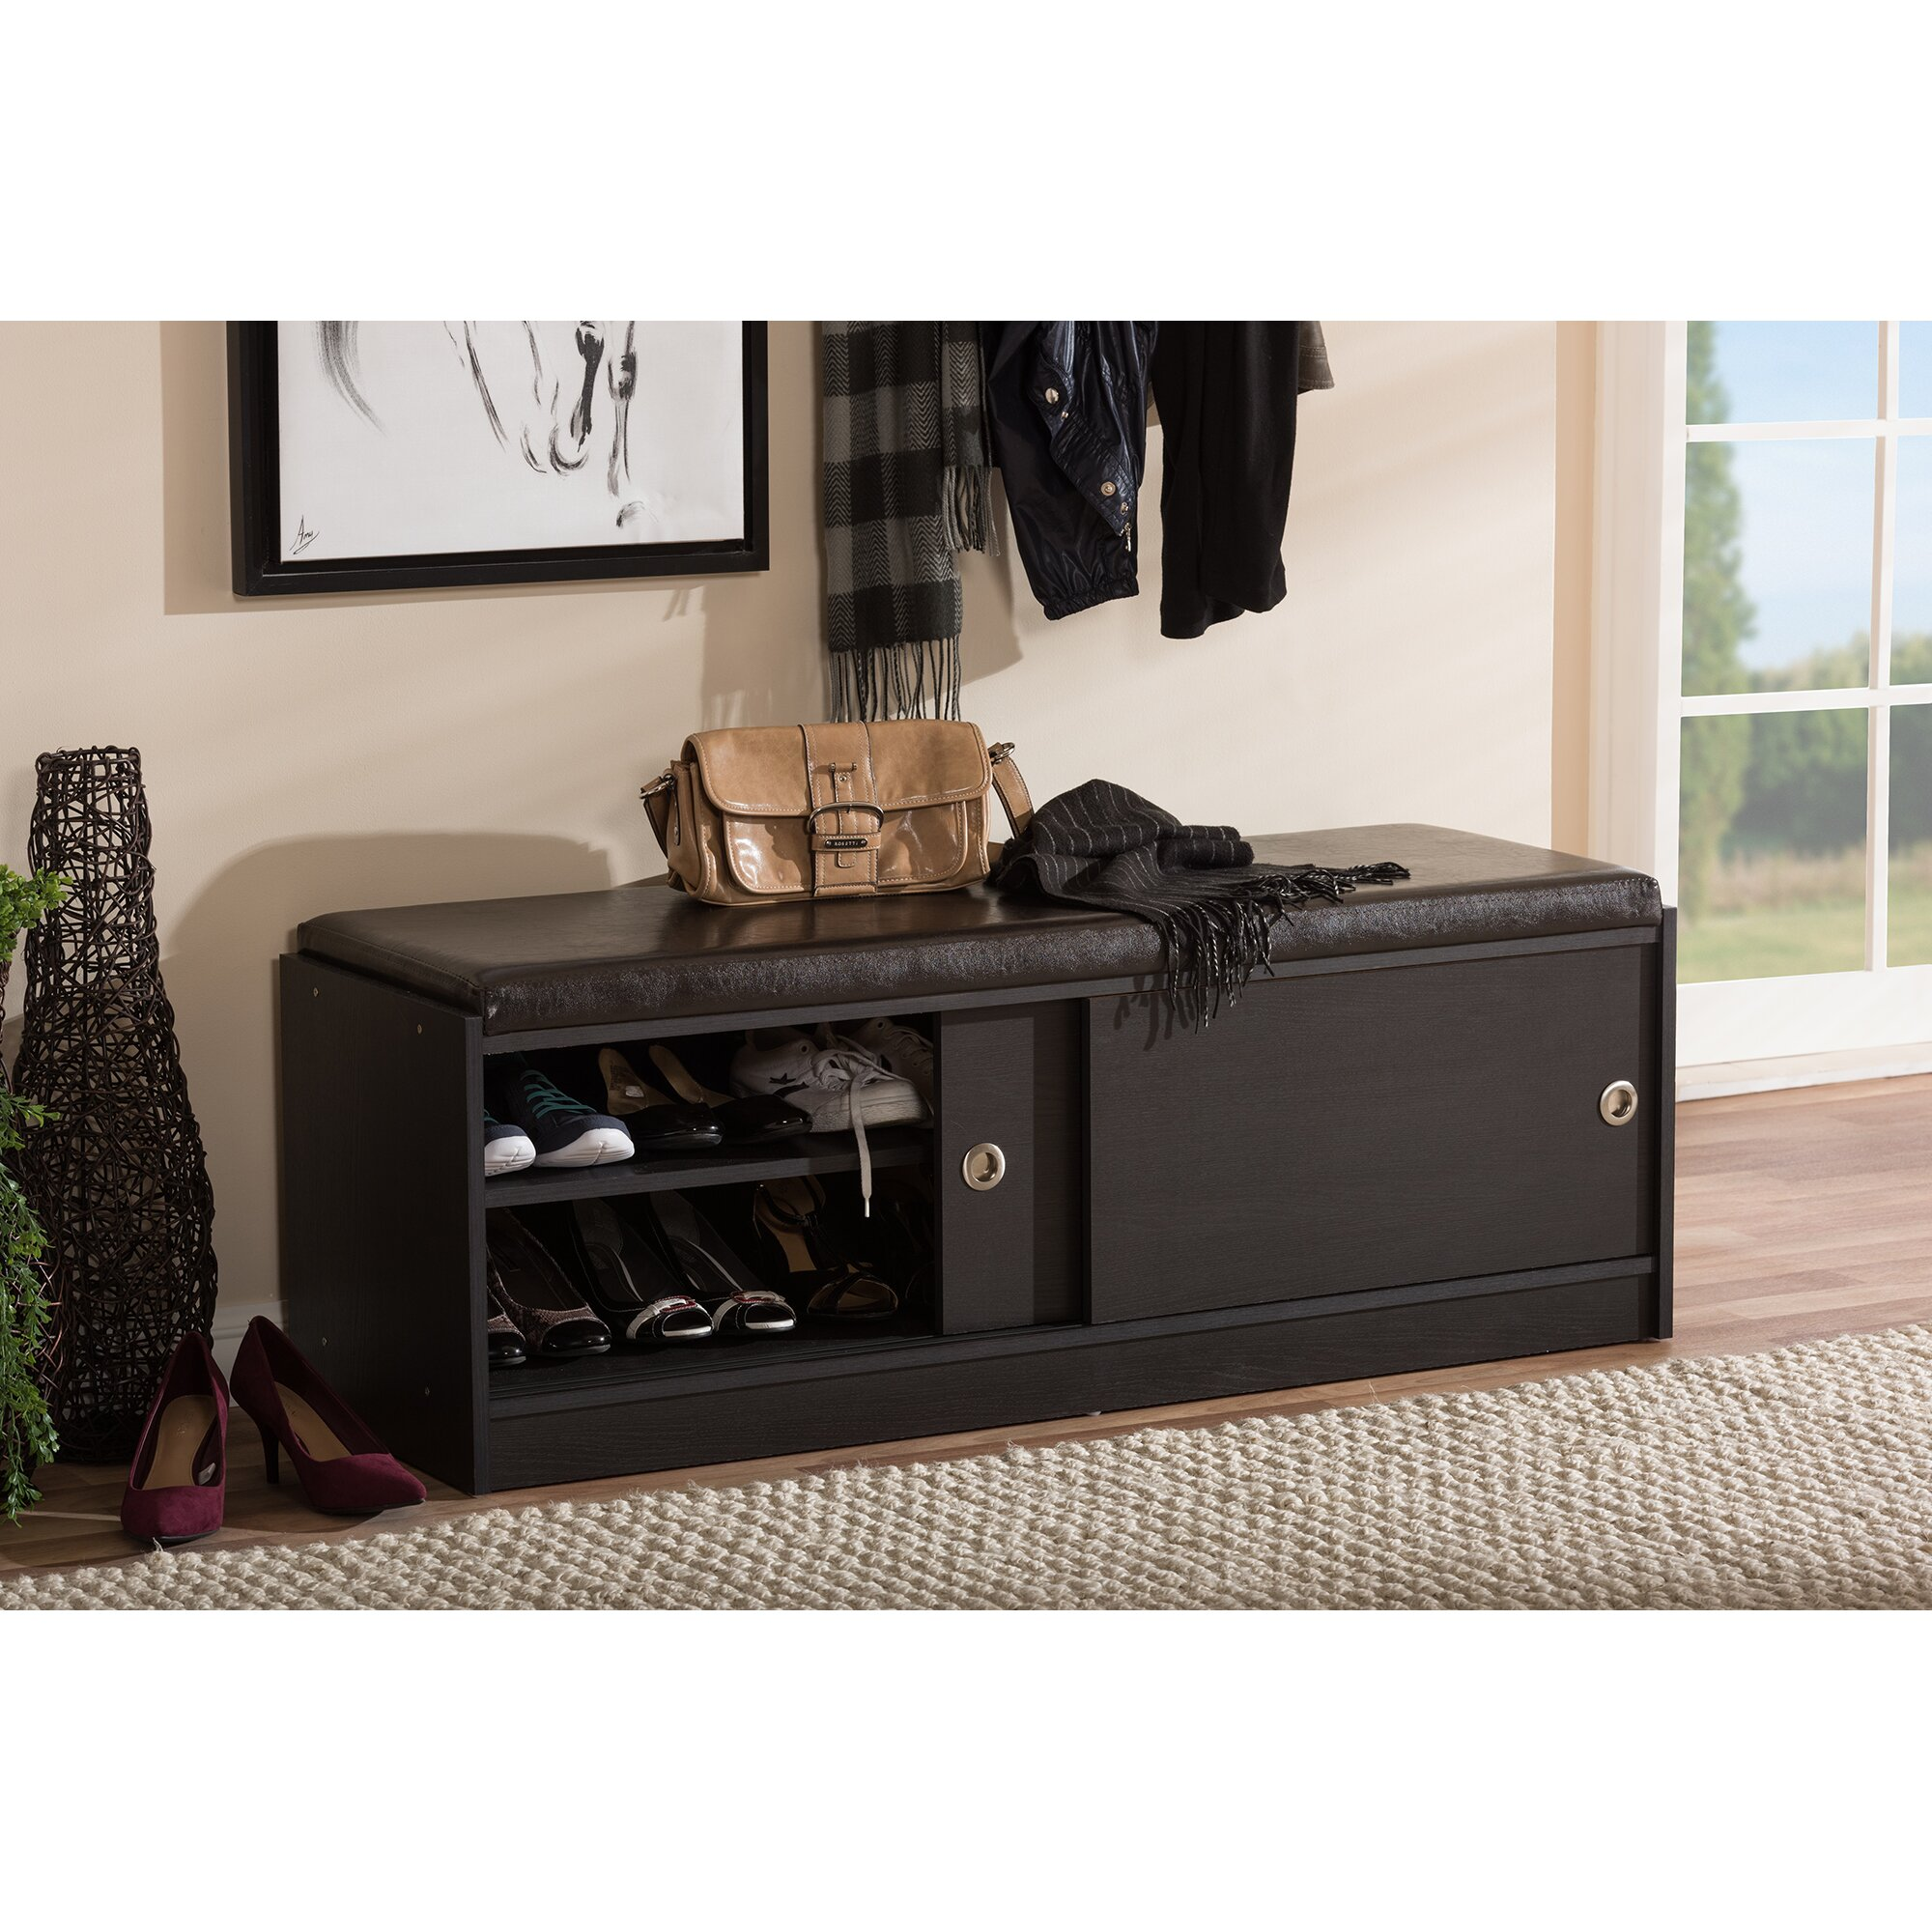 Wholesale Interiors Baxton Studio Clevedon Wood Storage Entryway Bench & Reviews | Wayfair